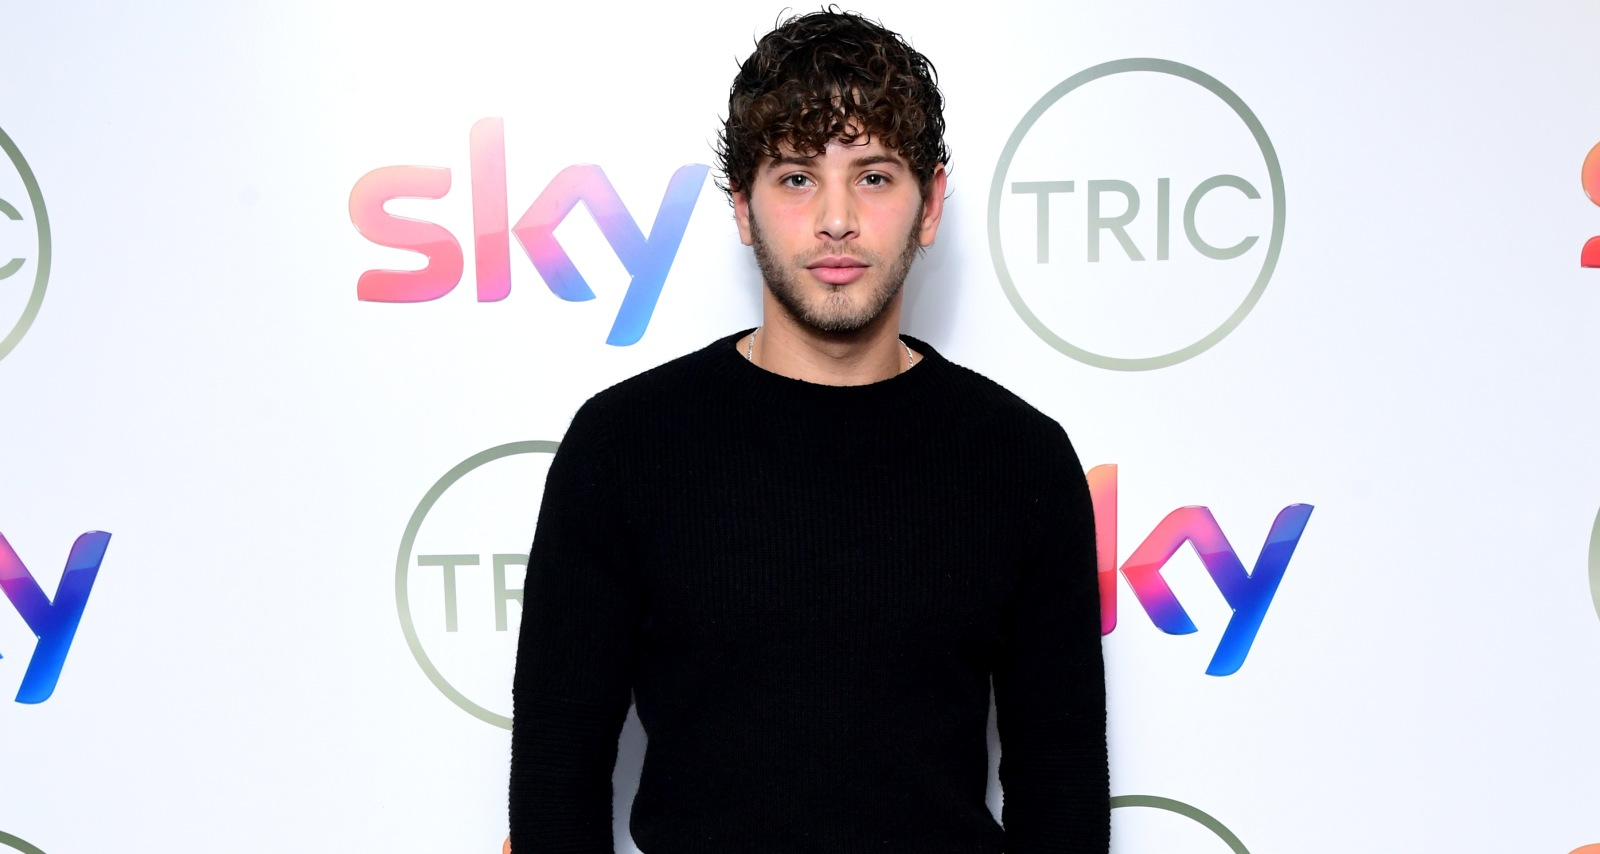 Eyal Booker Wiki Age, Parents, Family, and Other Facts about ...